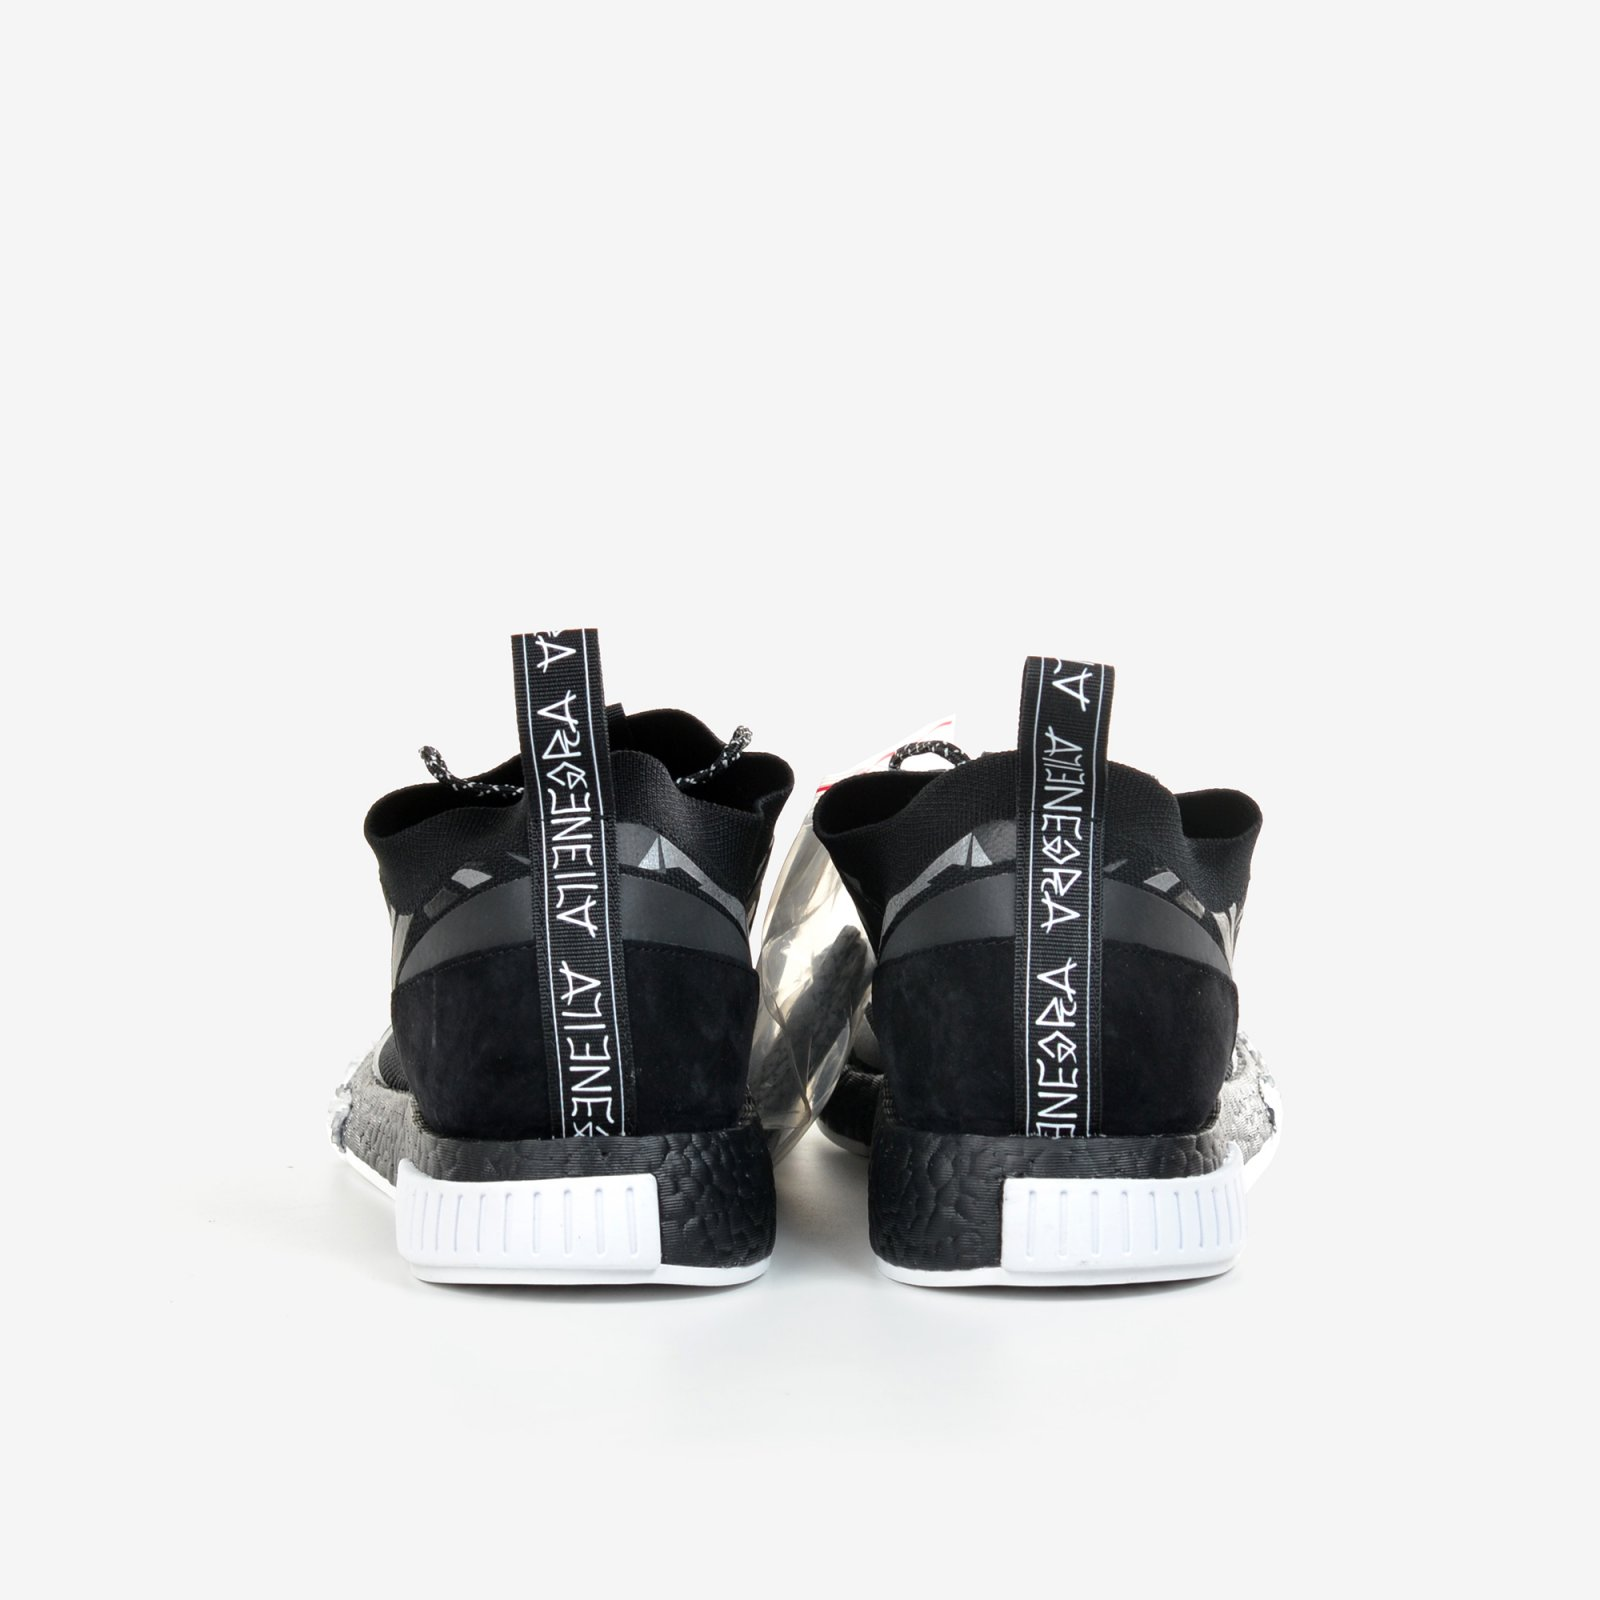 f5aa0763d8f42 Adidas Consortium X Juice NMD Racer Alienegra White Black with Shoe Bag  DB1777. Adidas